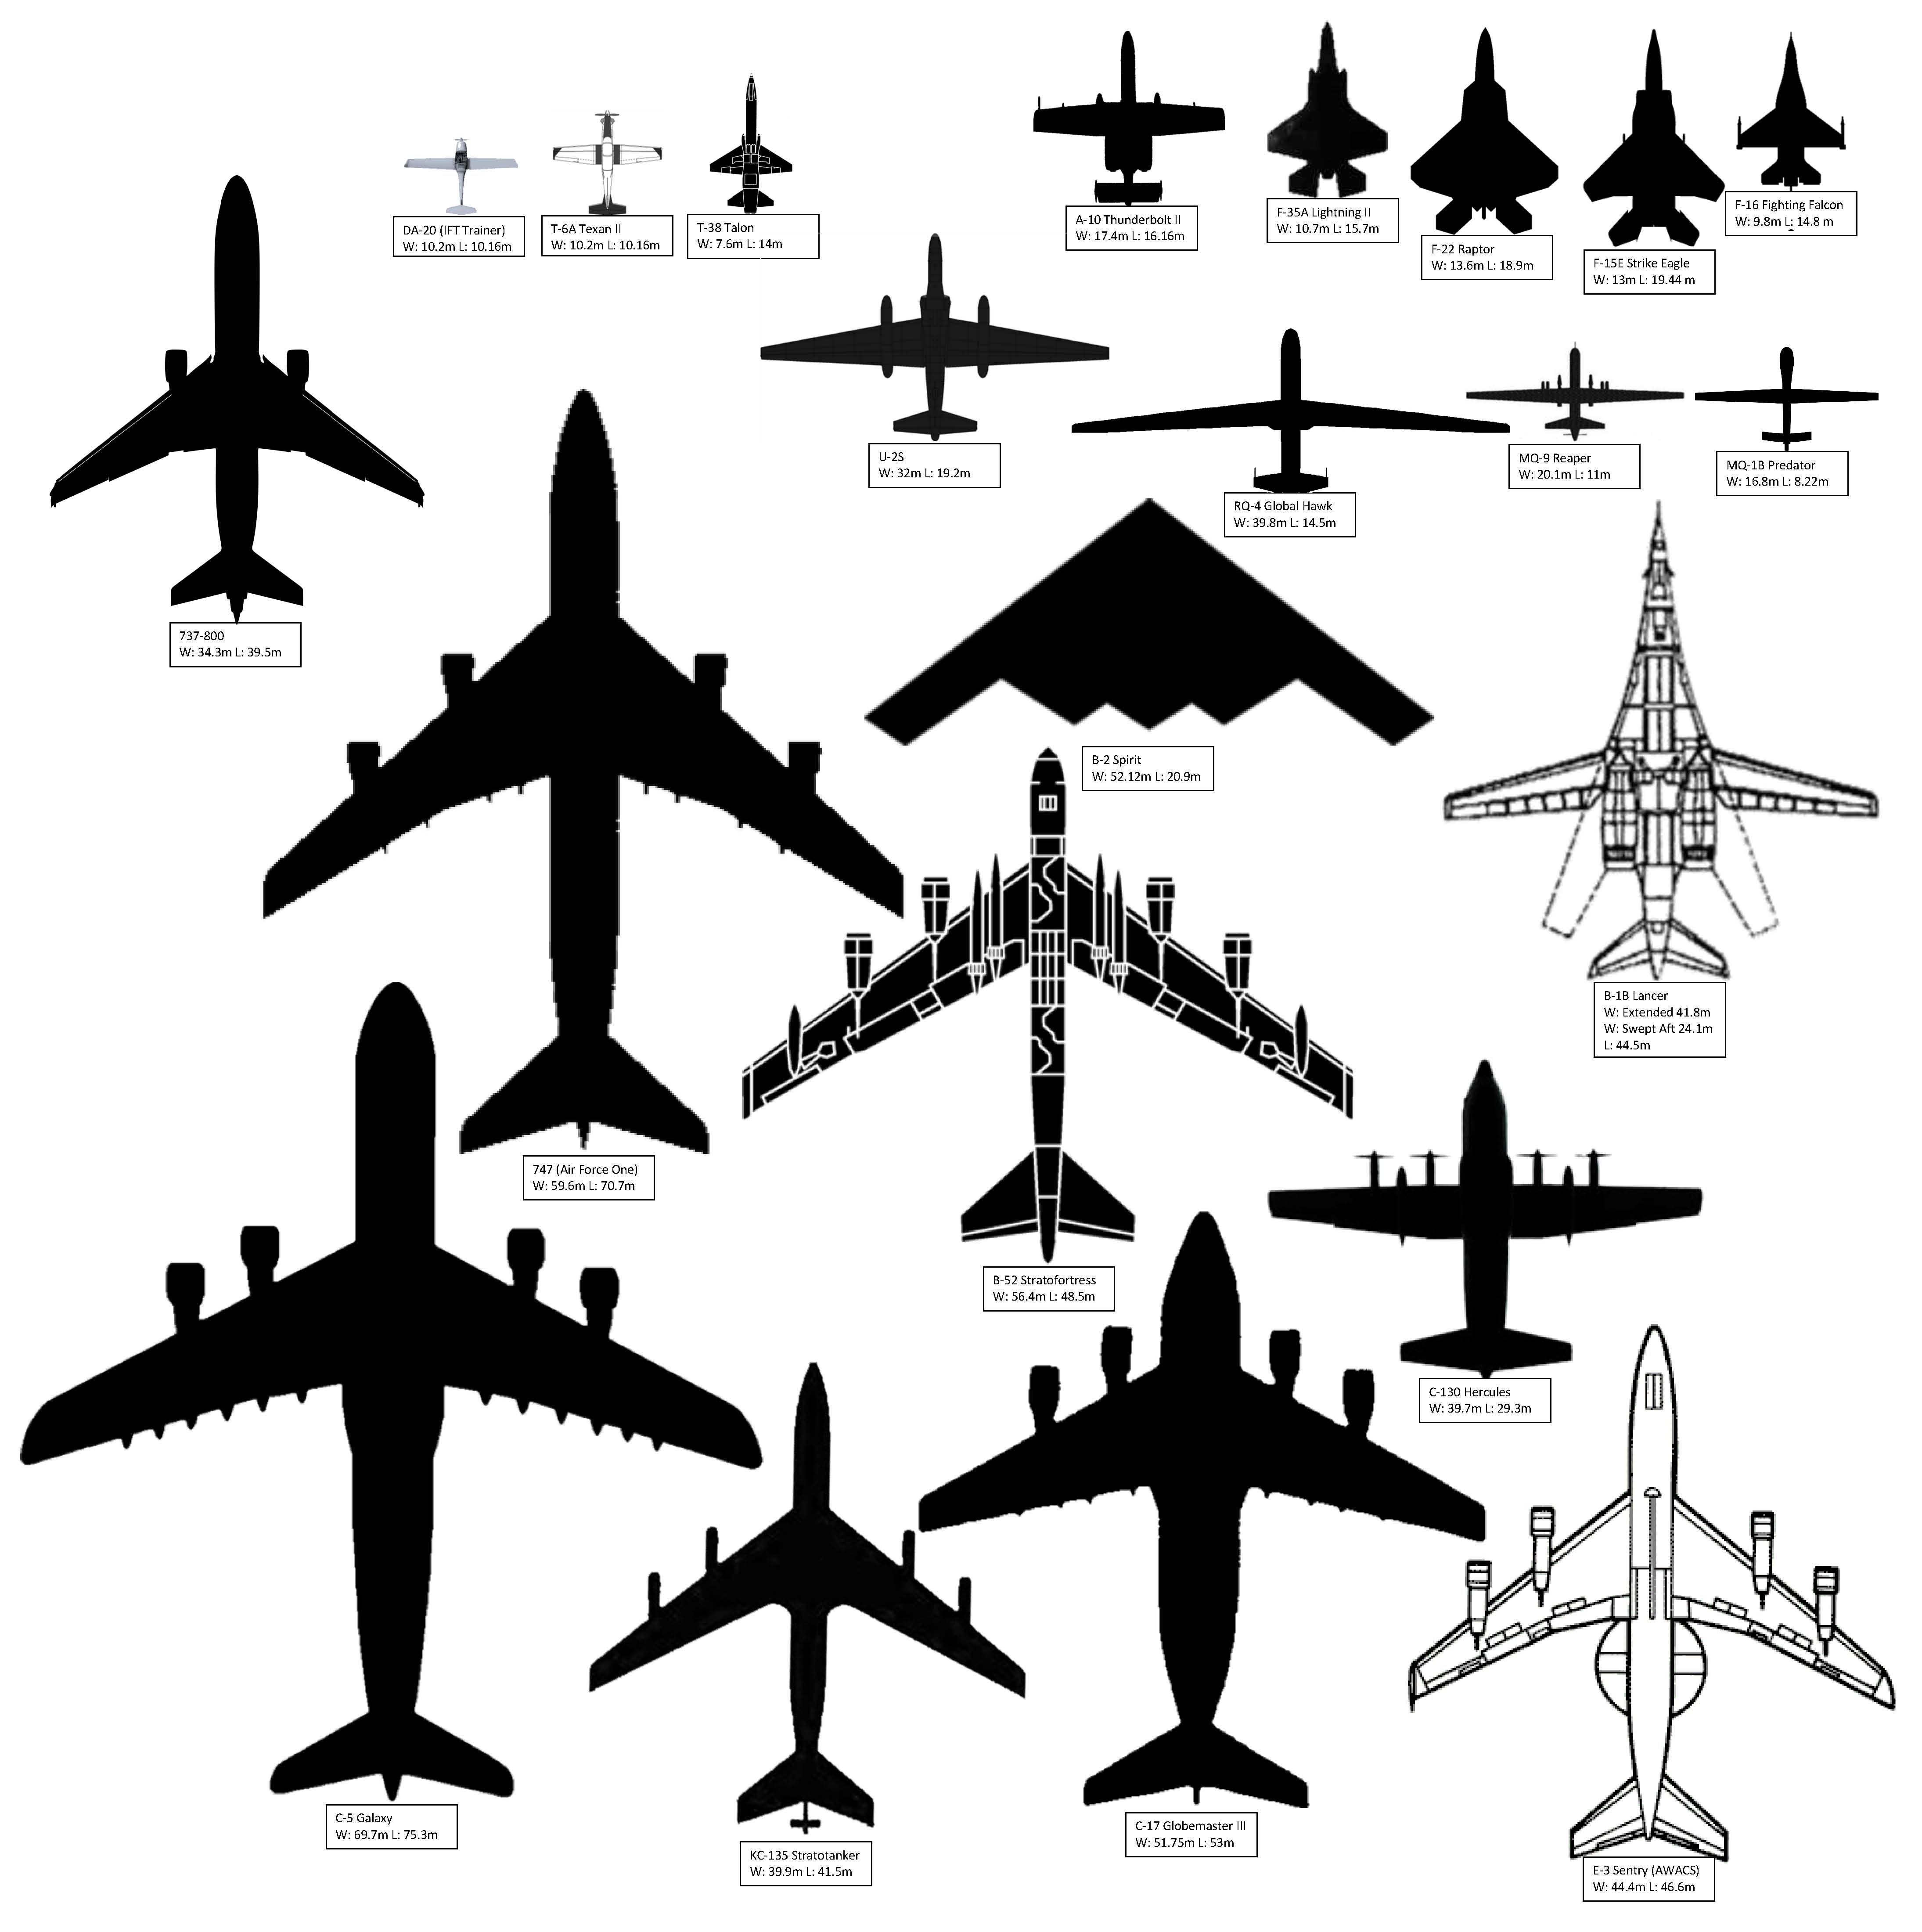 USAF Aircraft Sizes (with links)